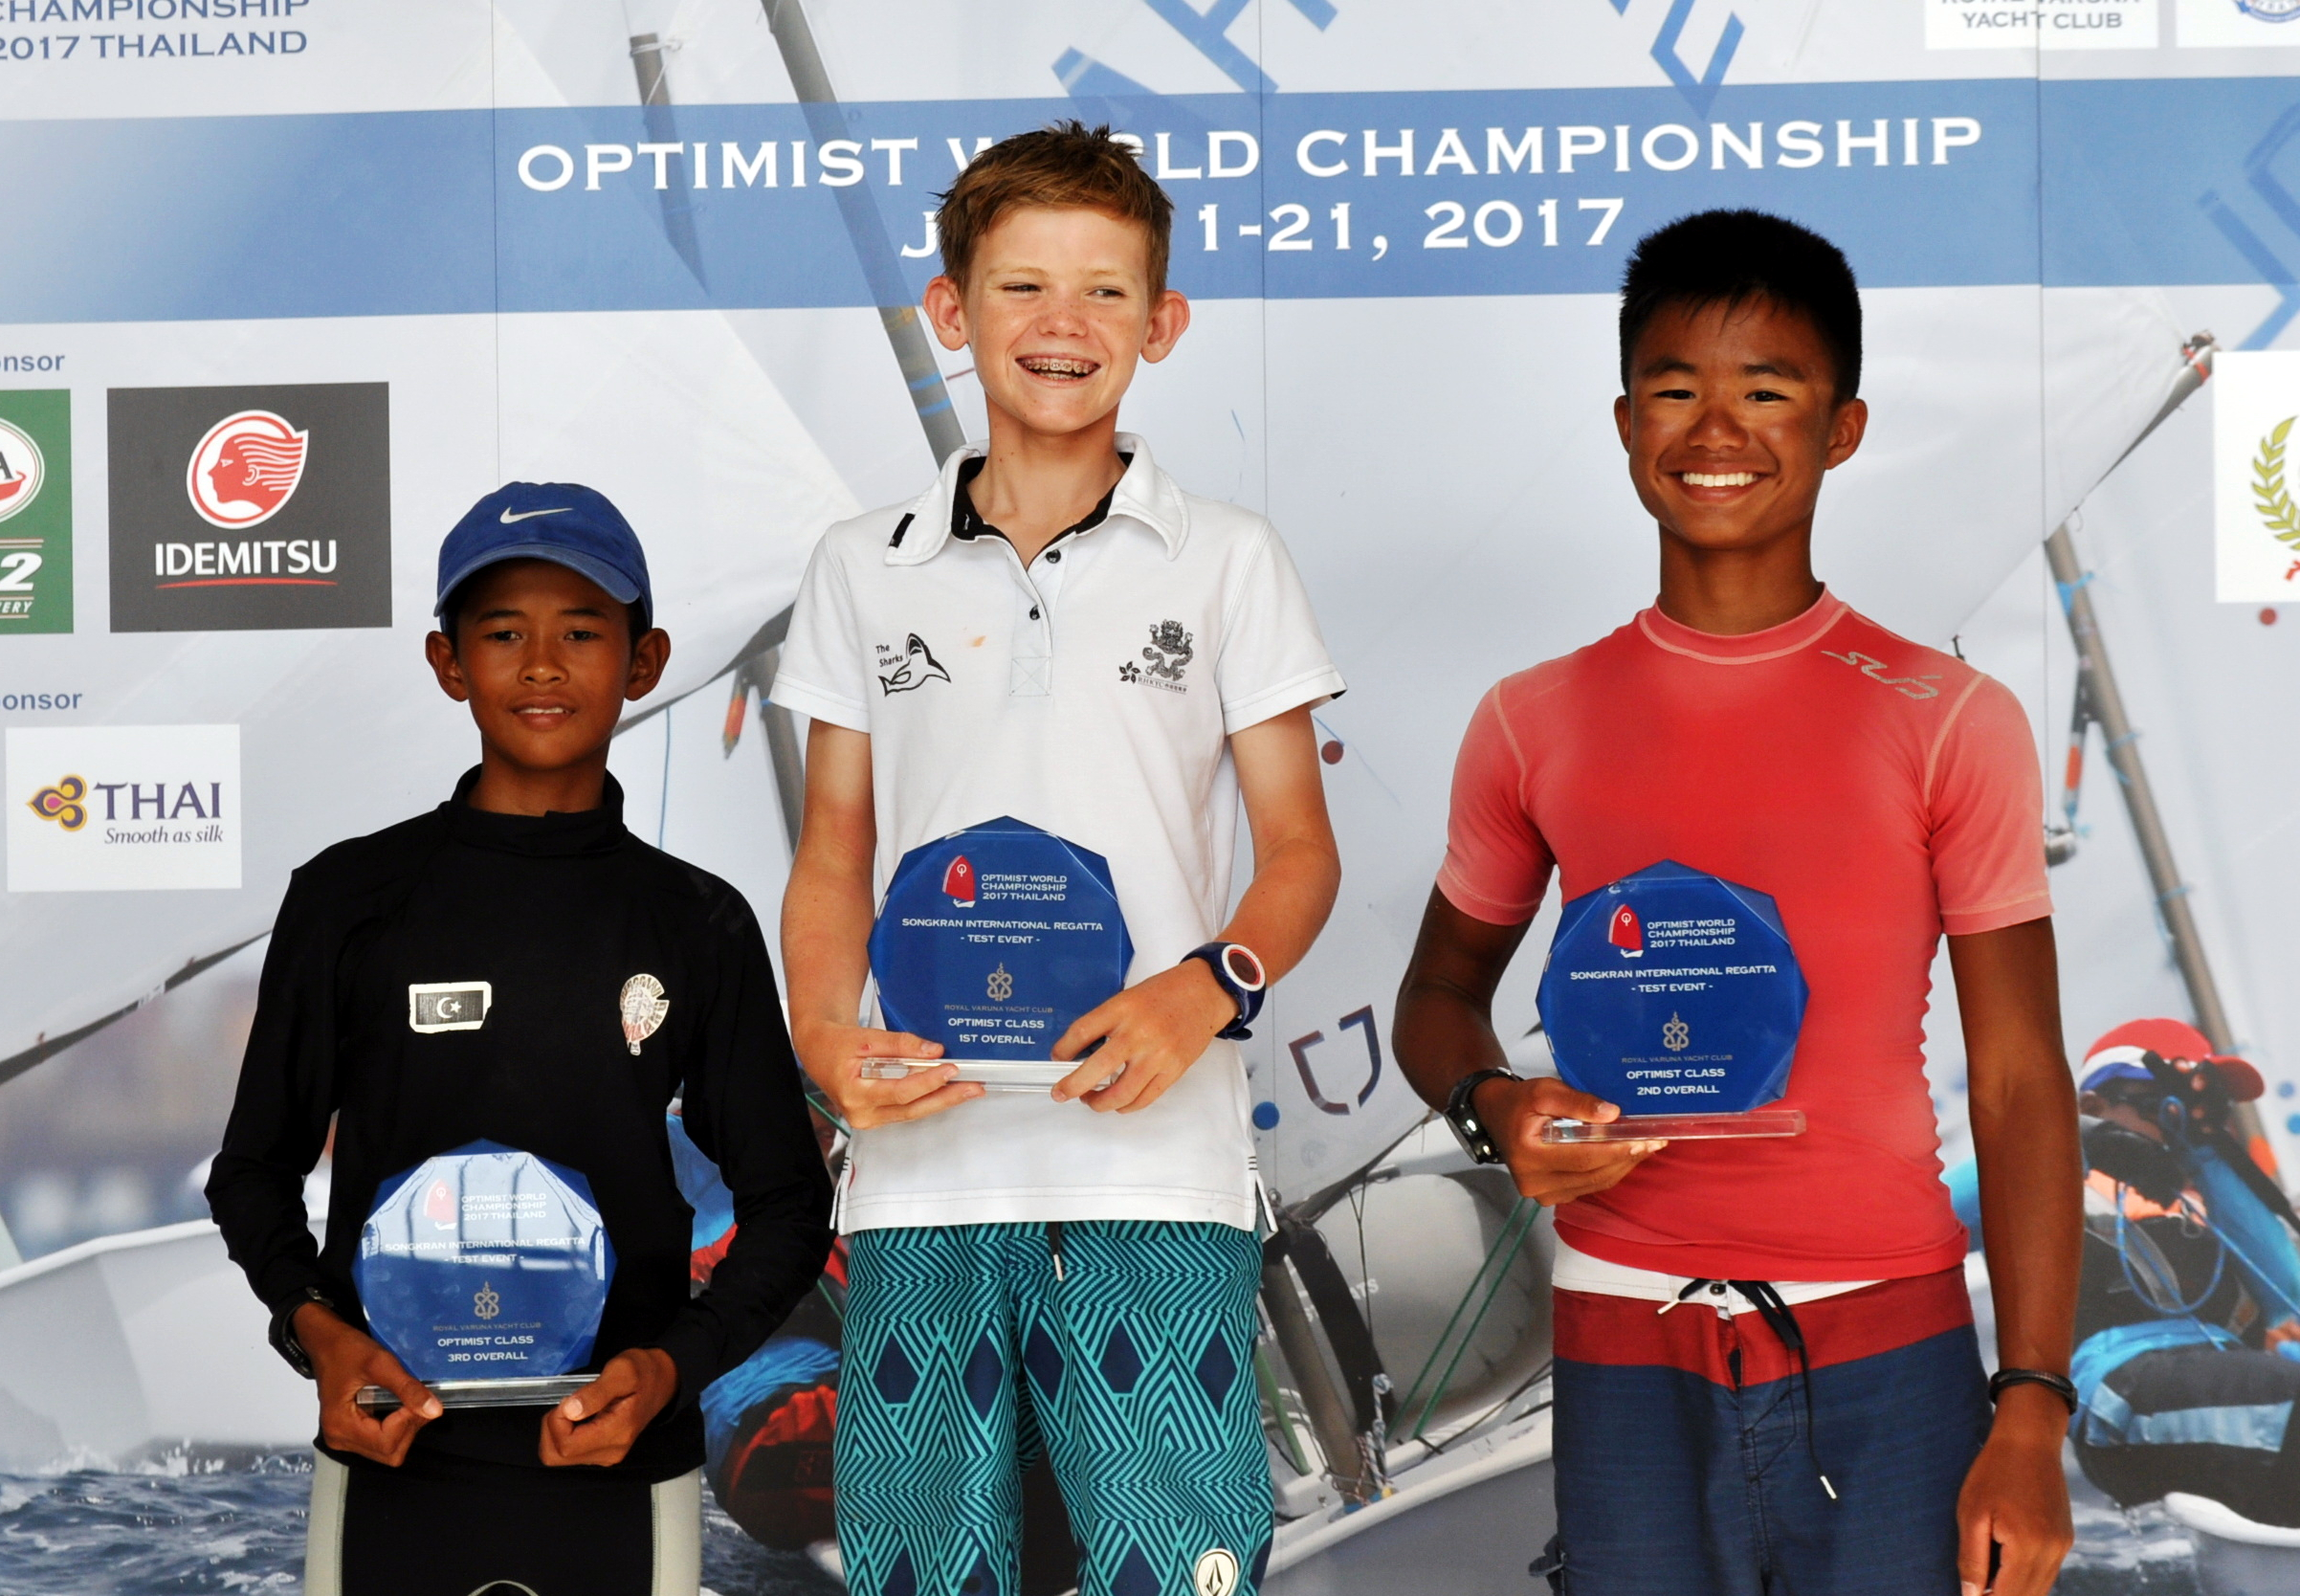 Individual winner Duncan Gregor of Hong Kong (centre) poses on the podium with Muhammed Khaidir Bin Mohd Zahawi from Malaysia (left) and Muhammad Daniel Kei, representing Singapore (right).